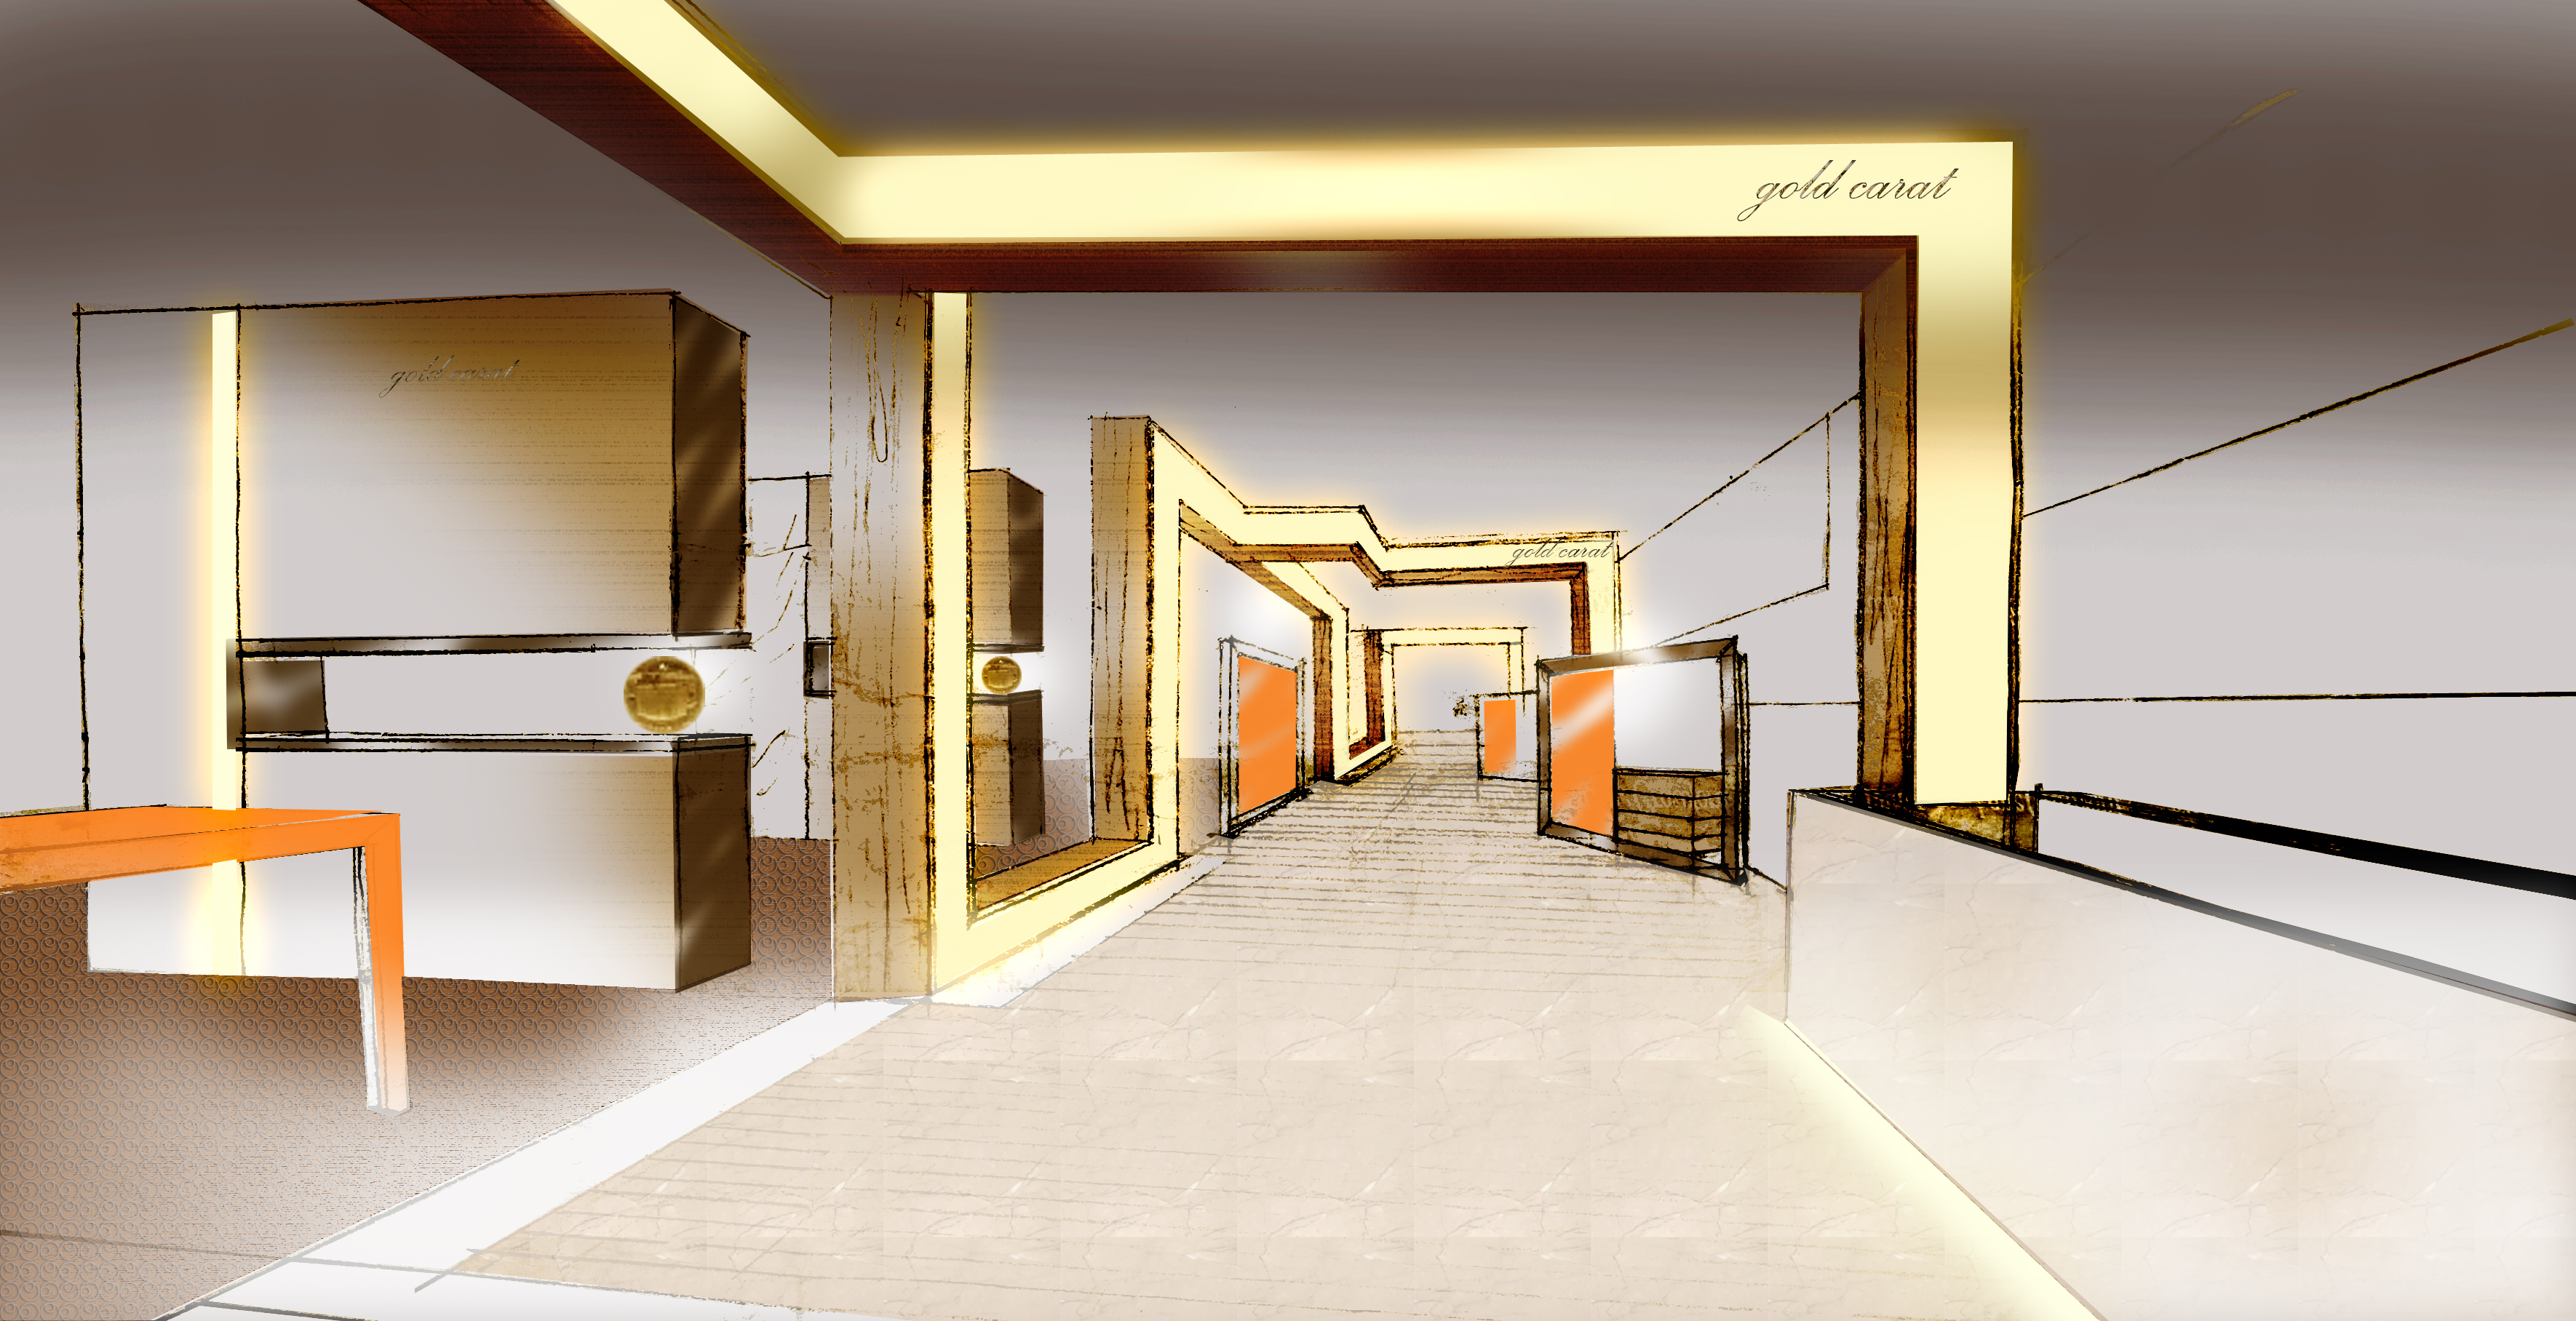 Jewelry shop in mainland china millwork interiors for Shop interior design